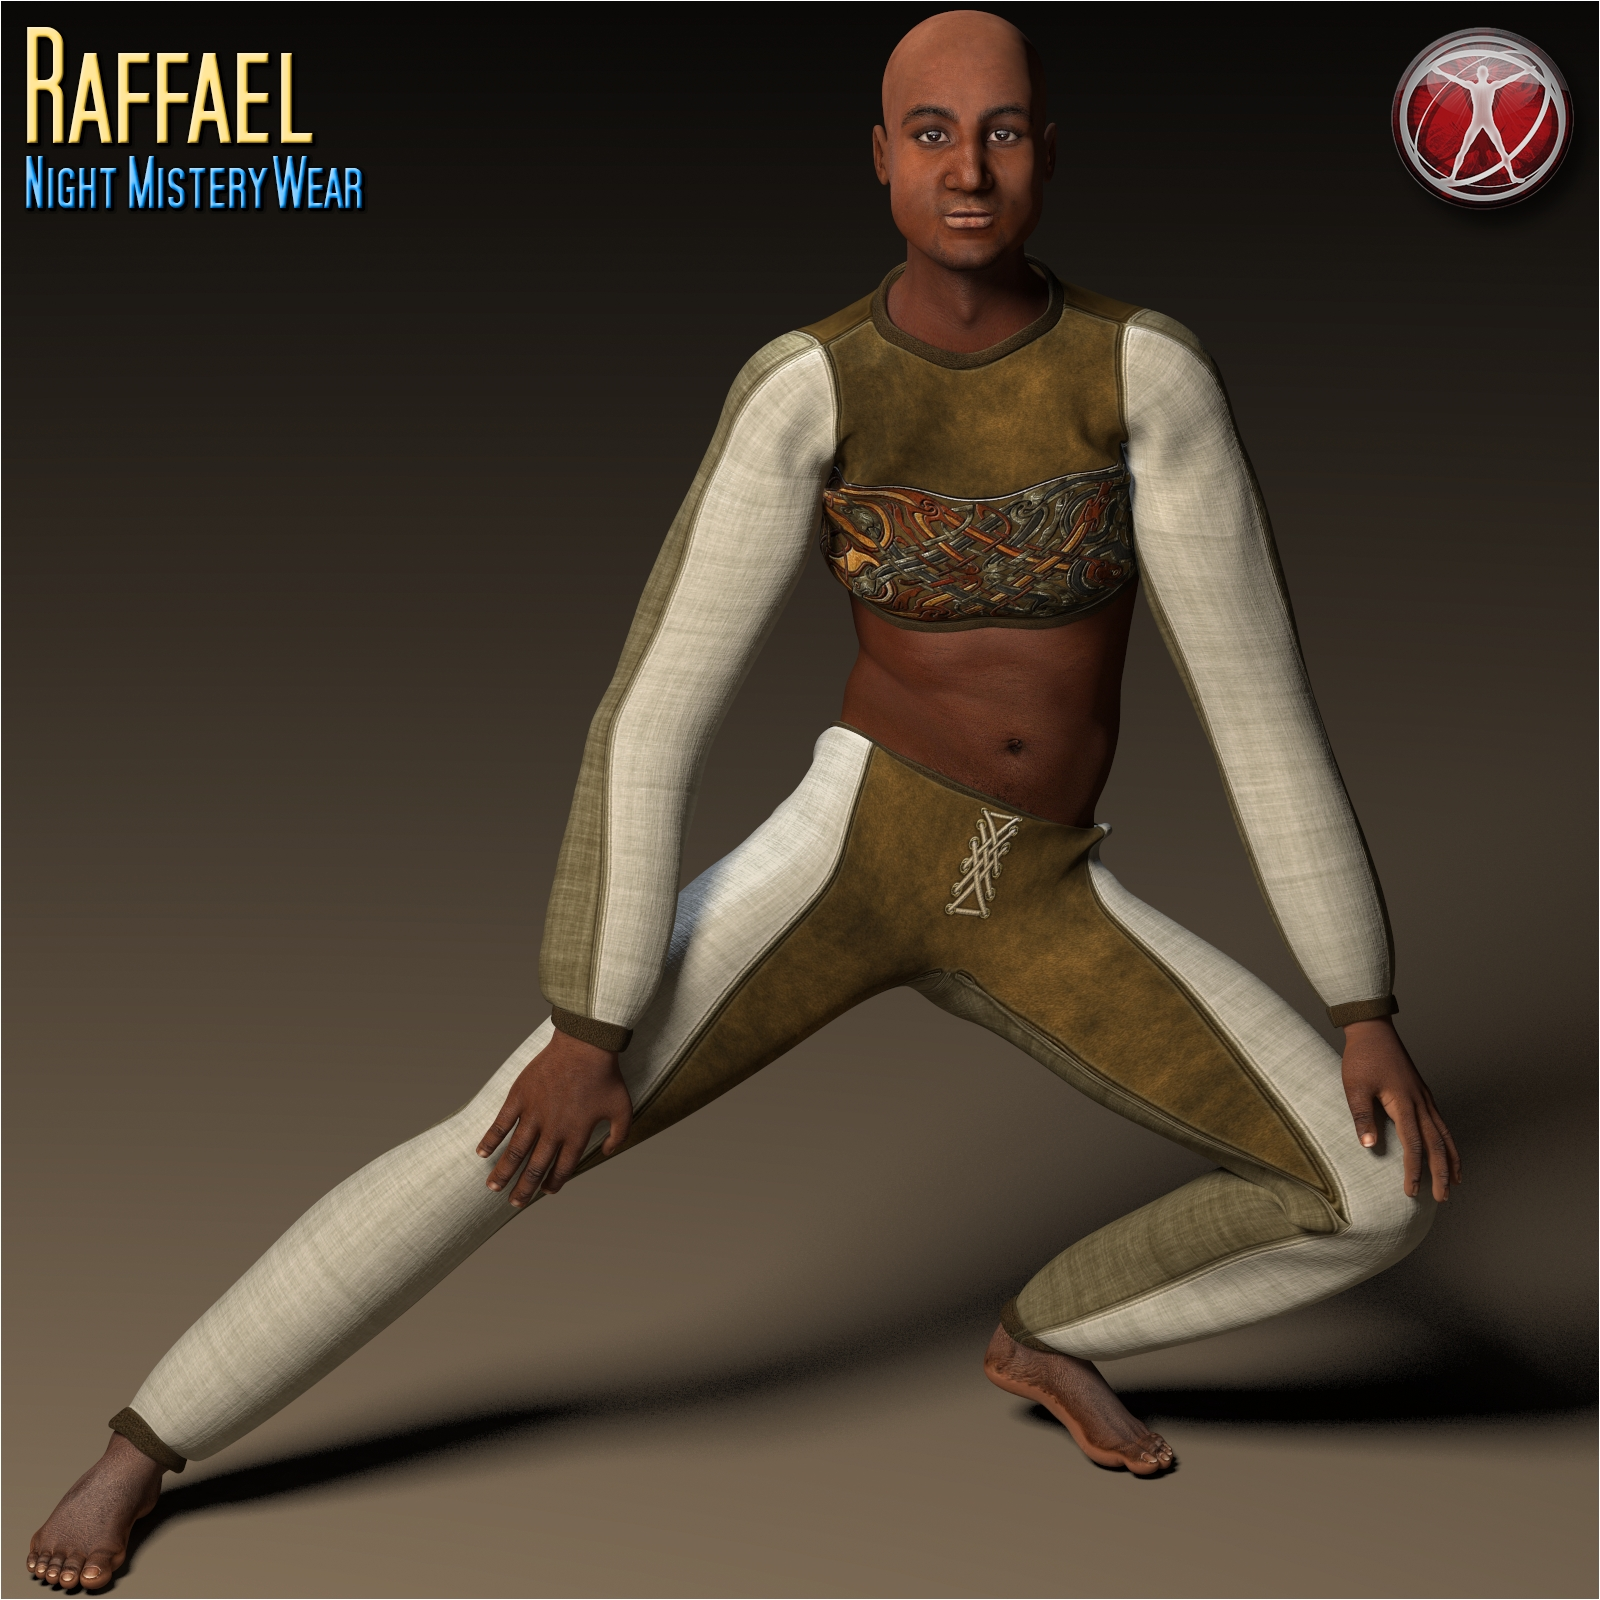 Raffael - Night Mistery Wear